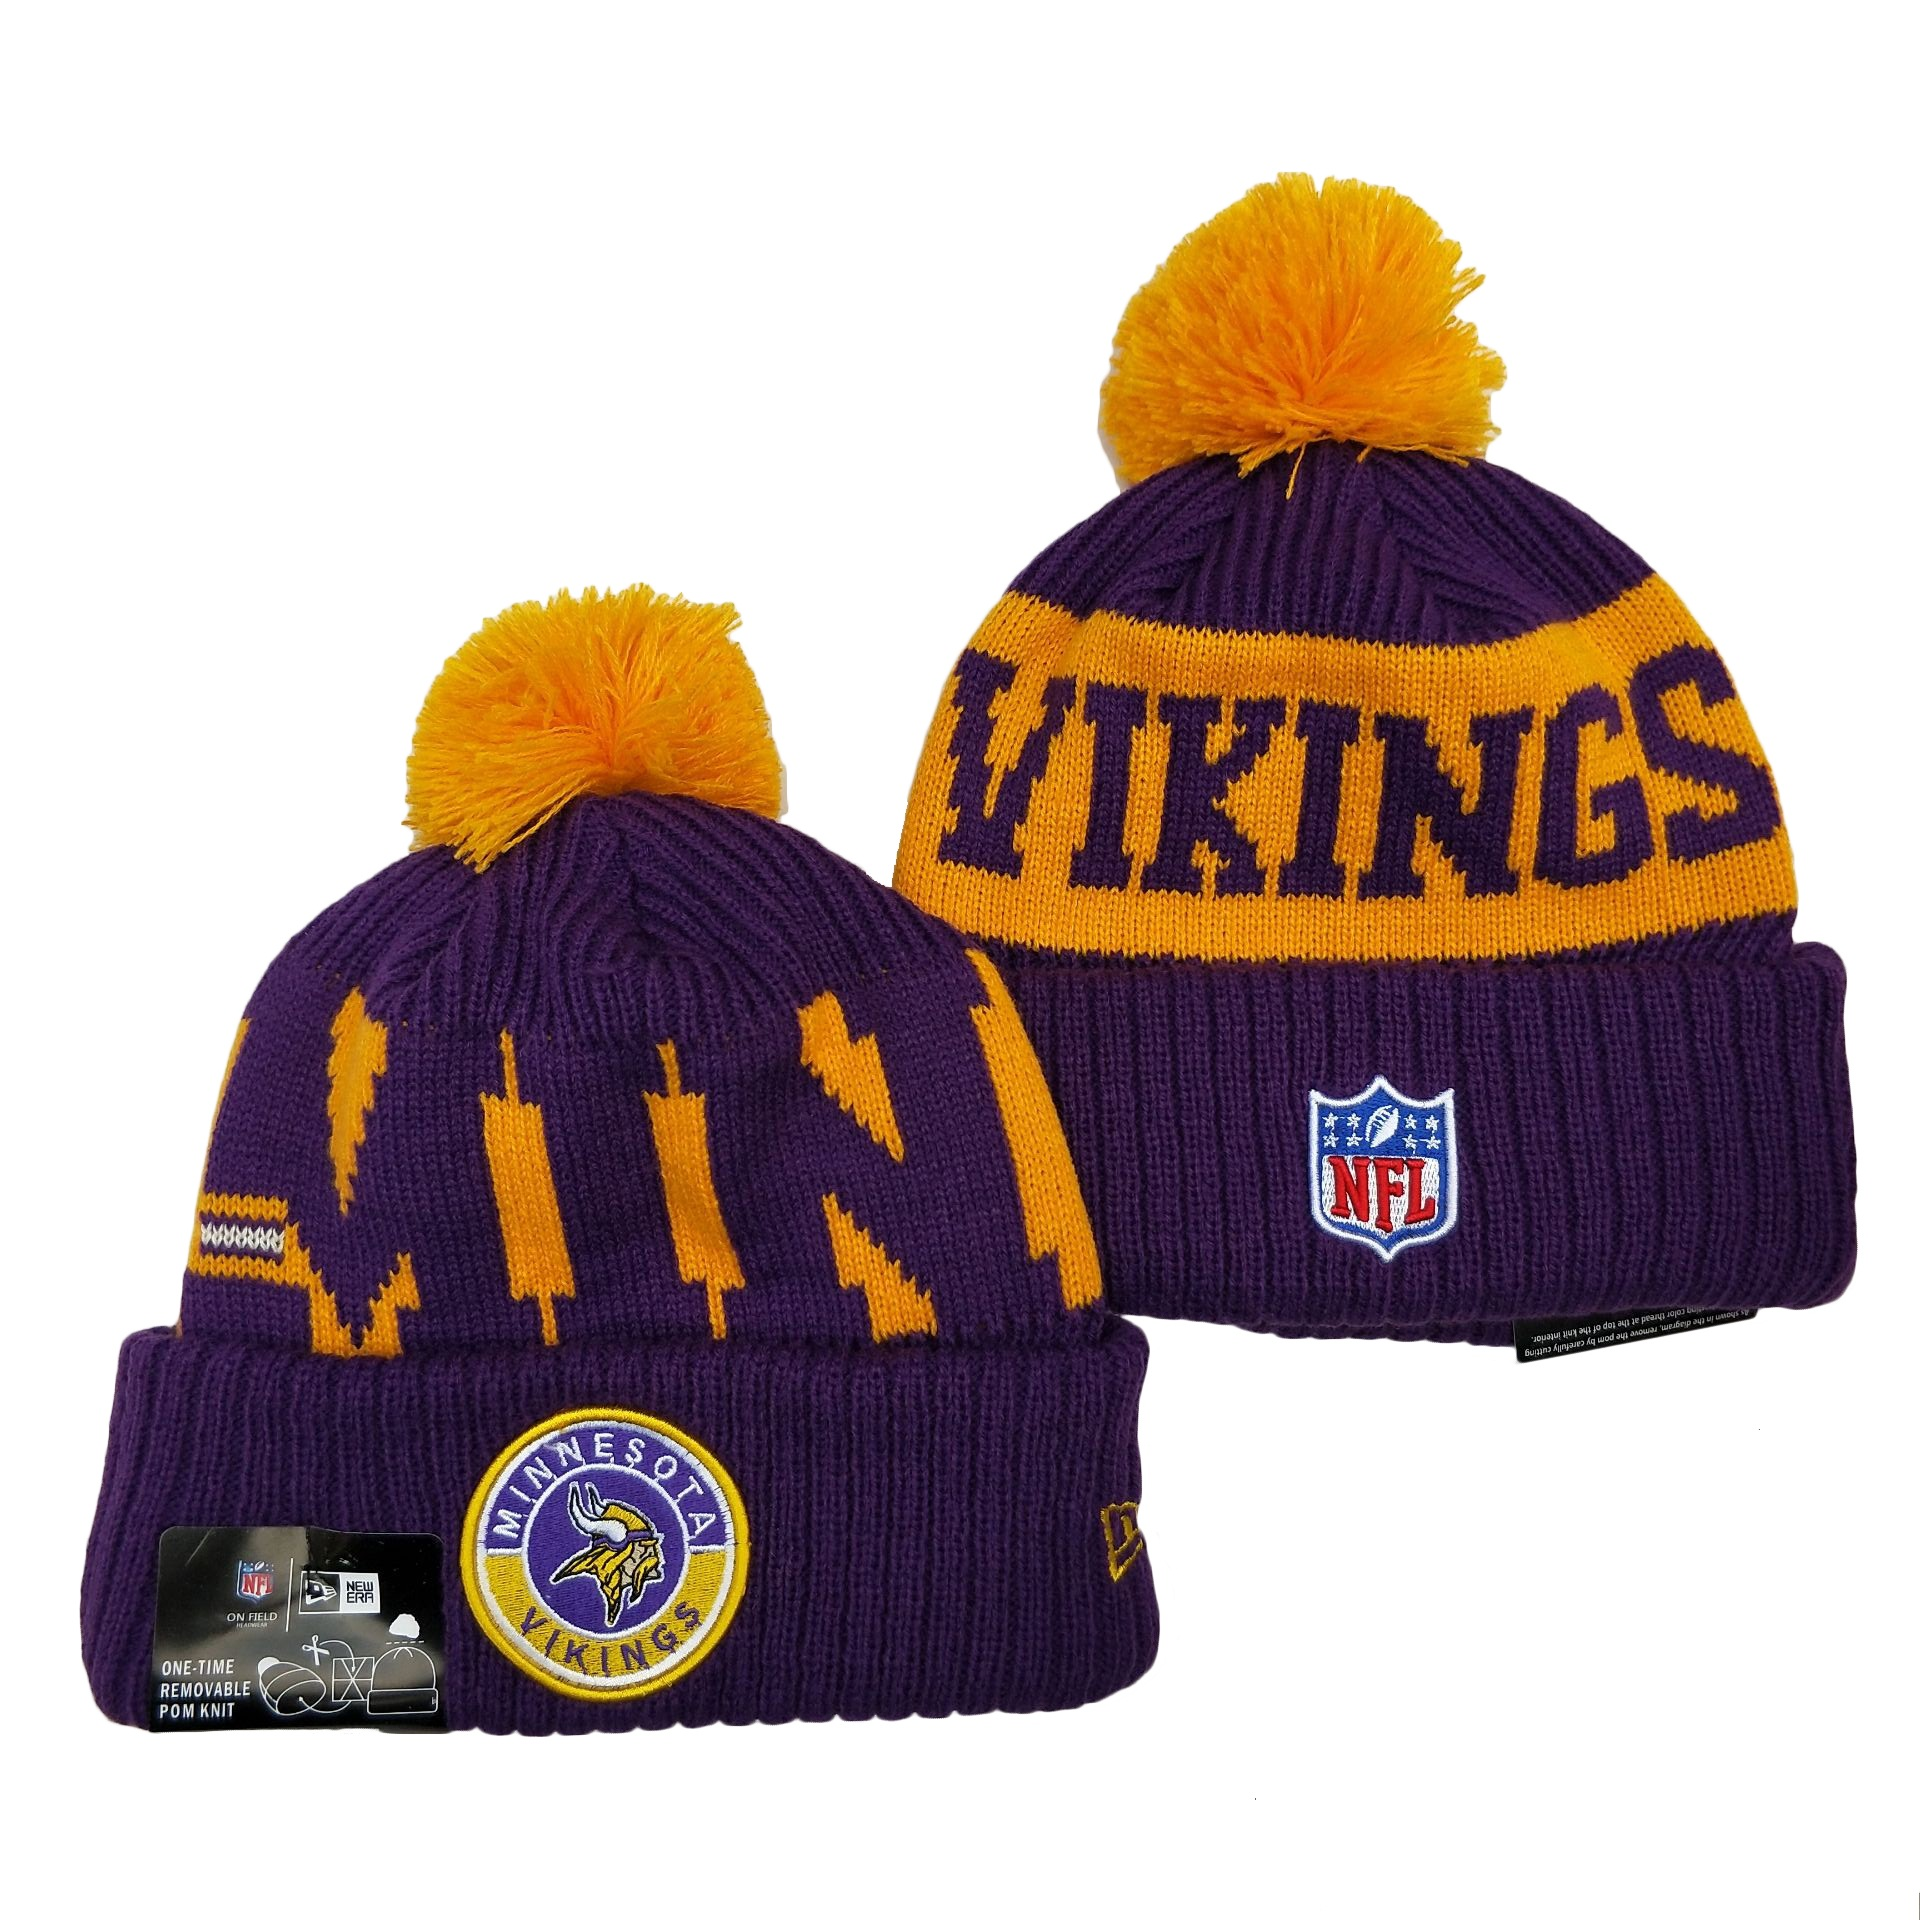 Minnesota Vikings Knit Hats 045